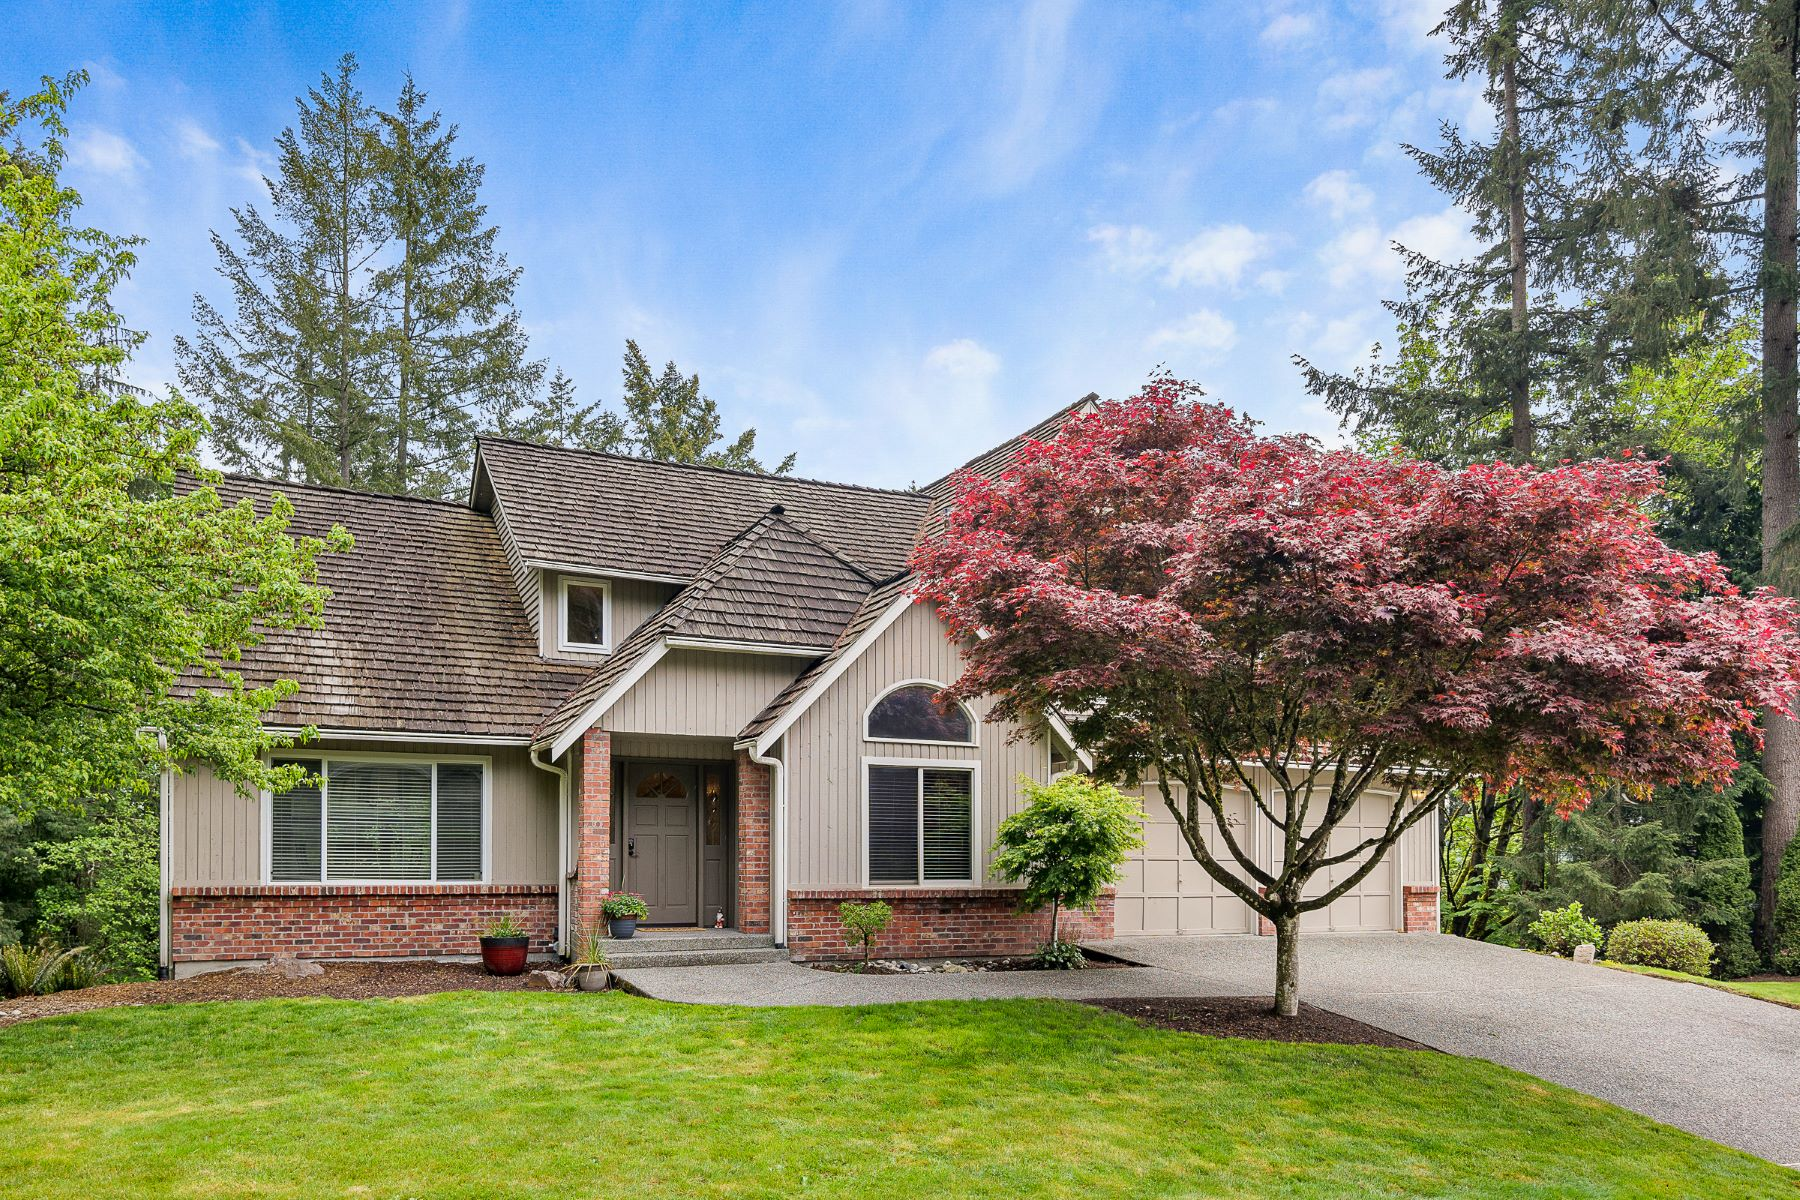 Single Family Homes for Sale at English Hill Estate 13404 184th Ave NE, Woodinville, Washington 98072 United States